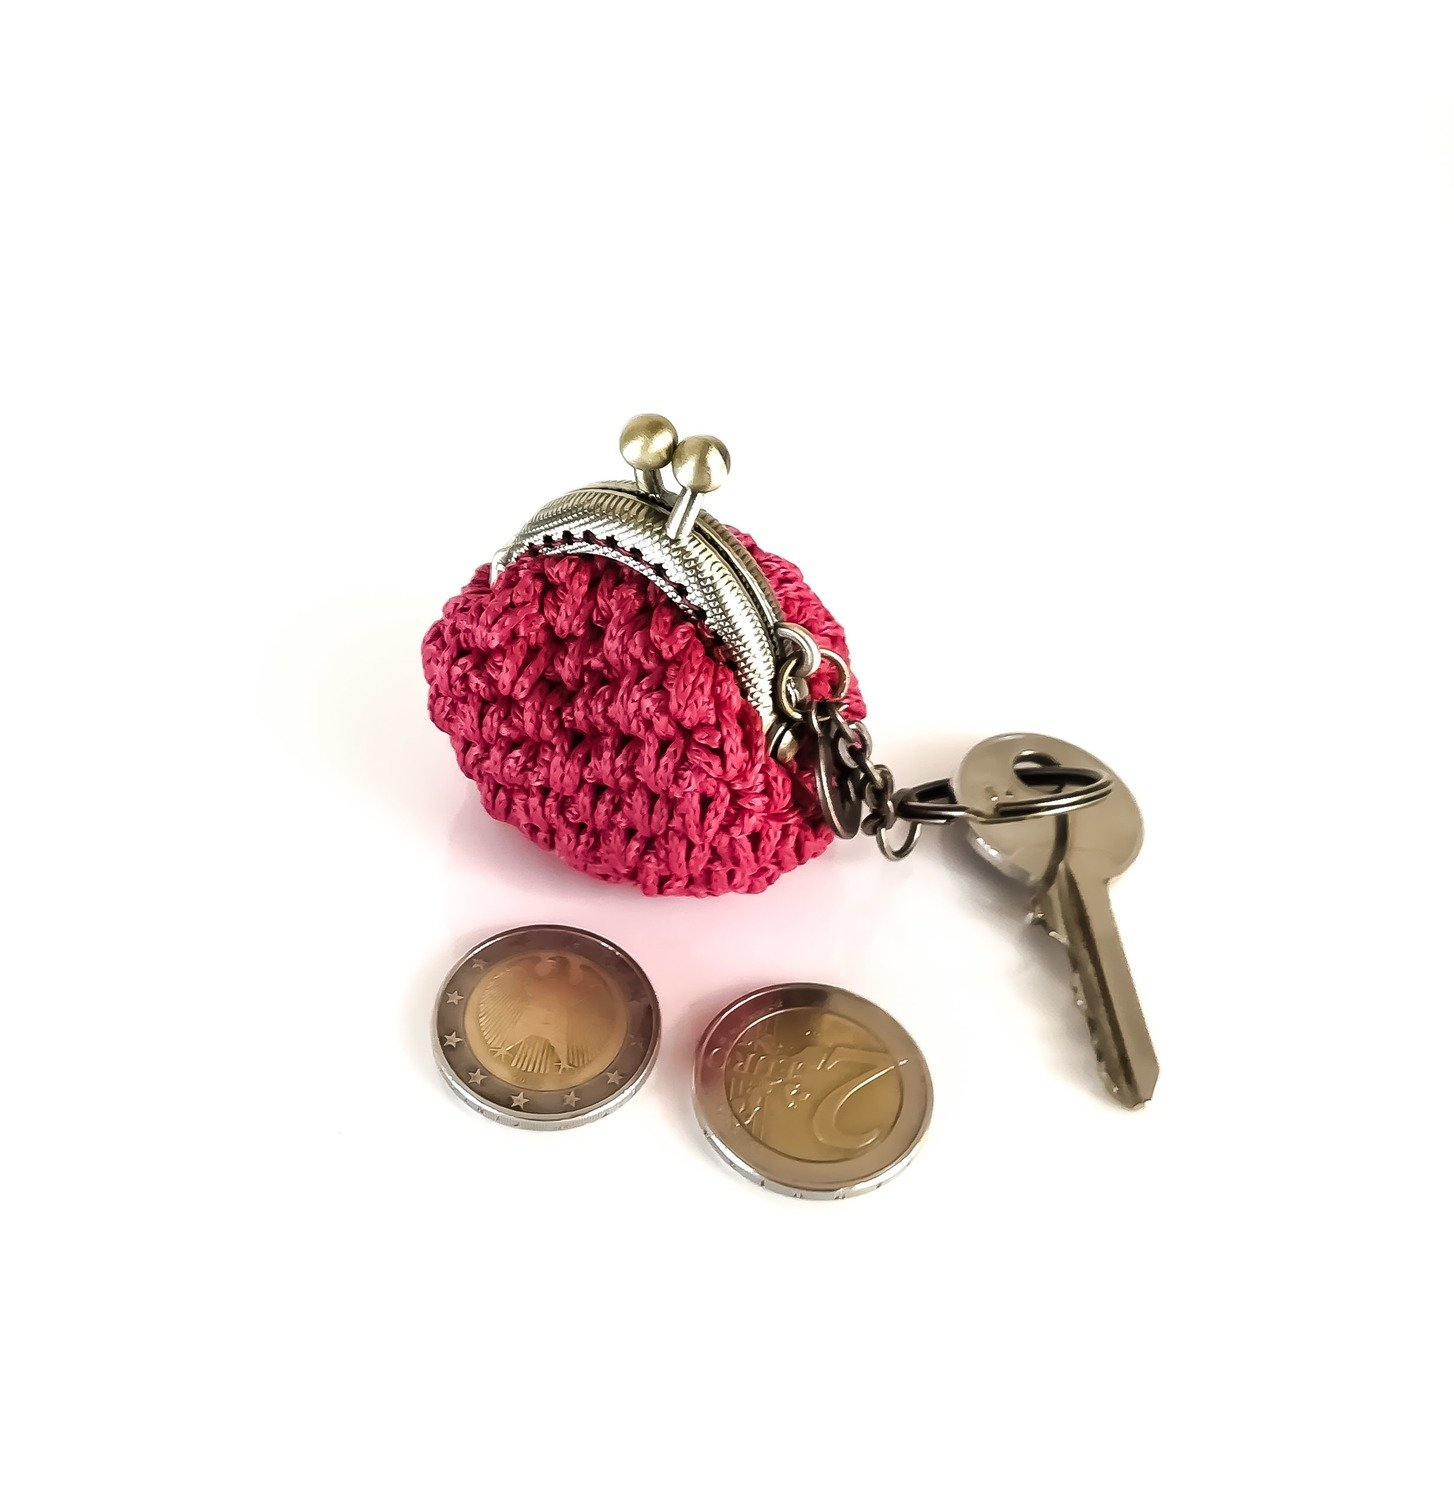 keychain with red crochet coin purse eed8e5860